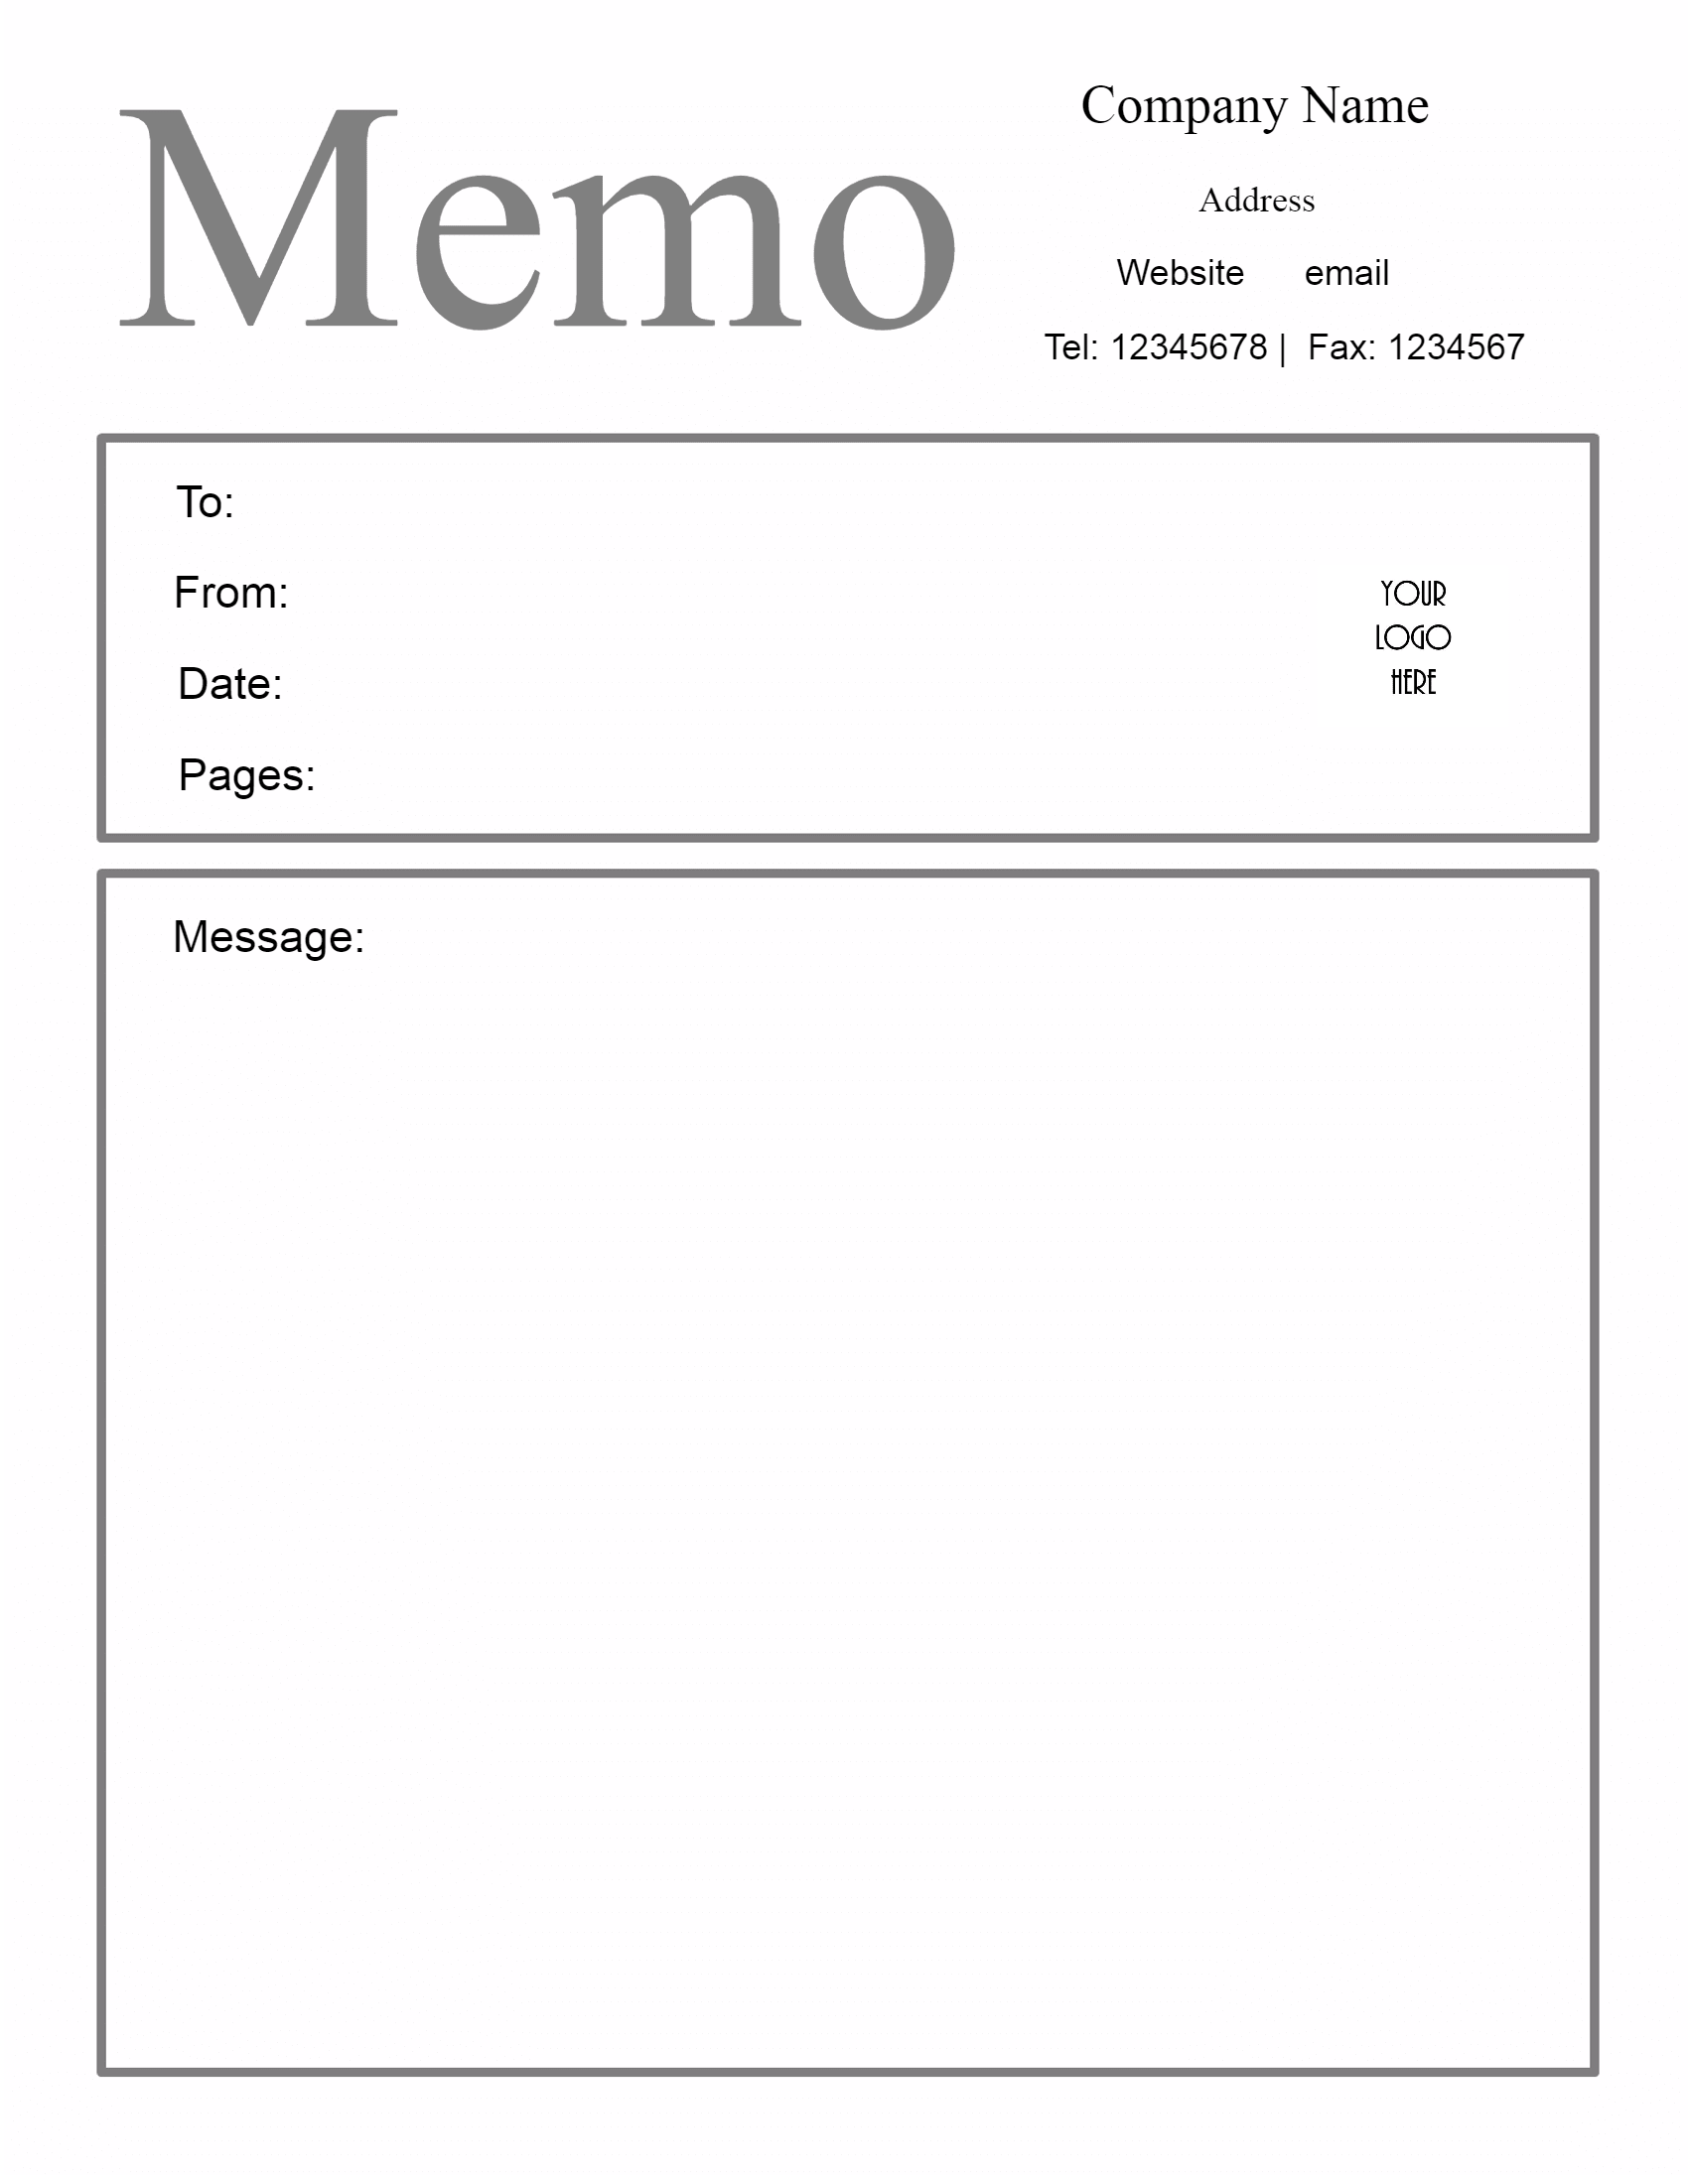 Memo Template  Memo Format On Word